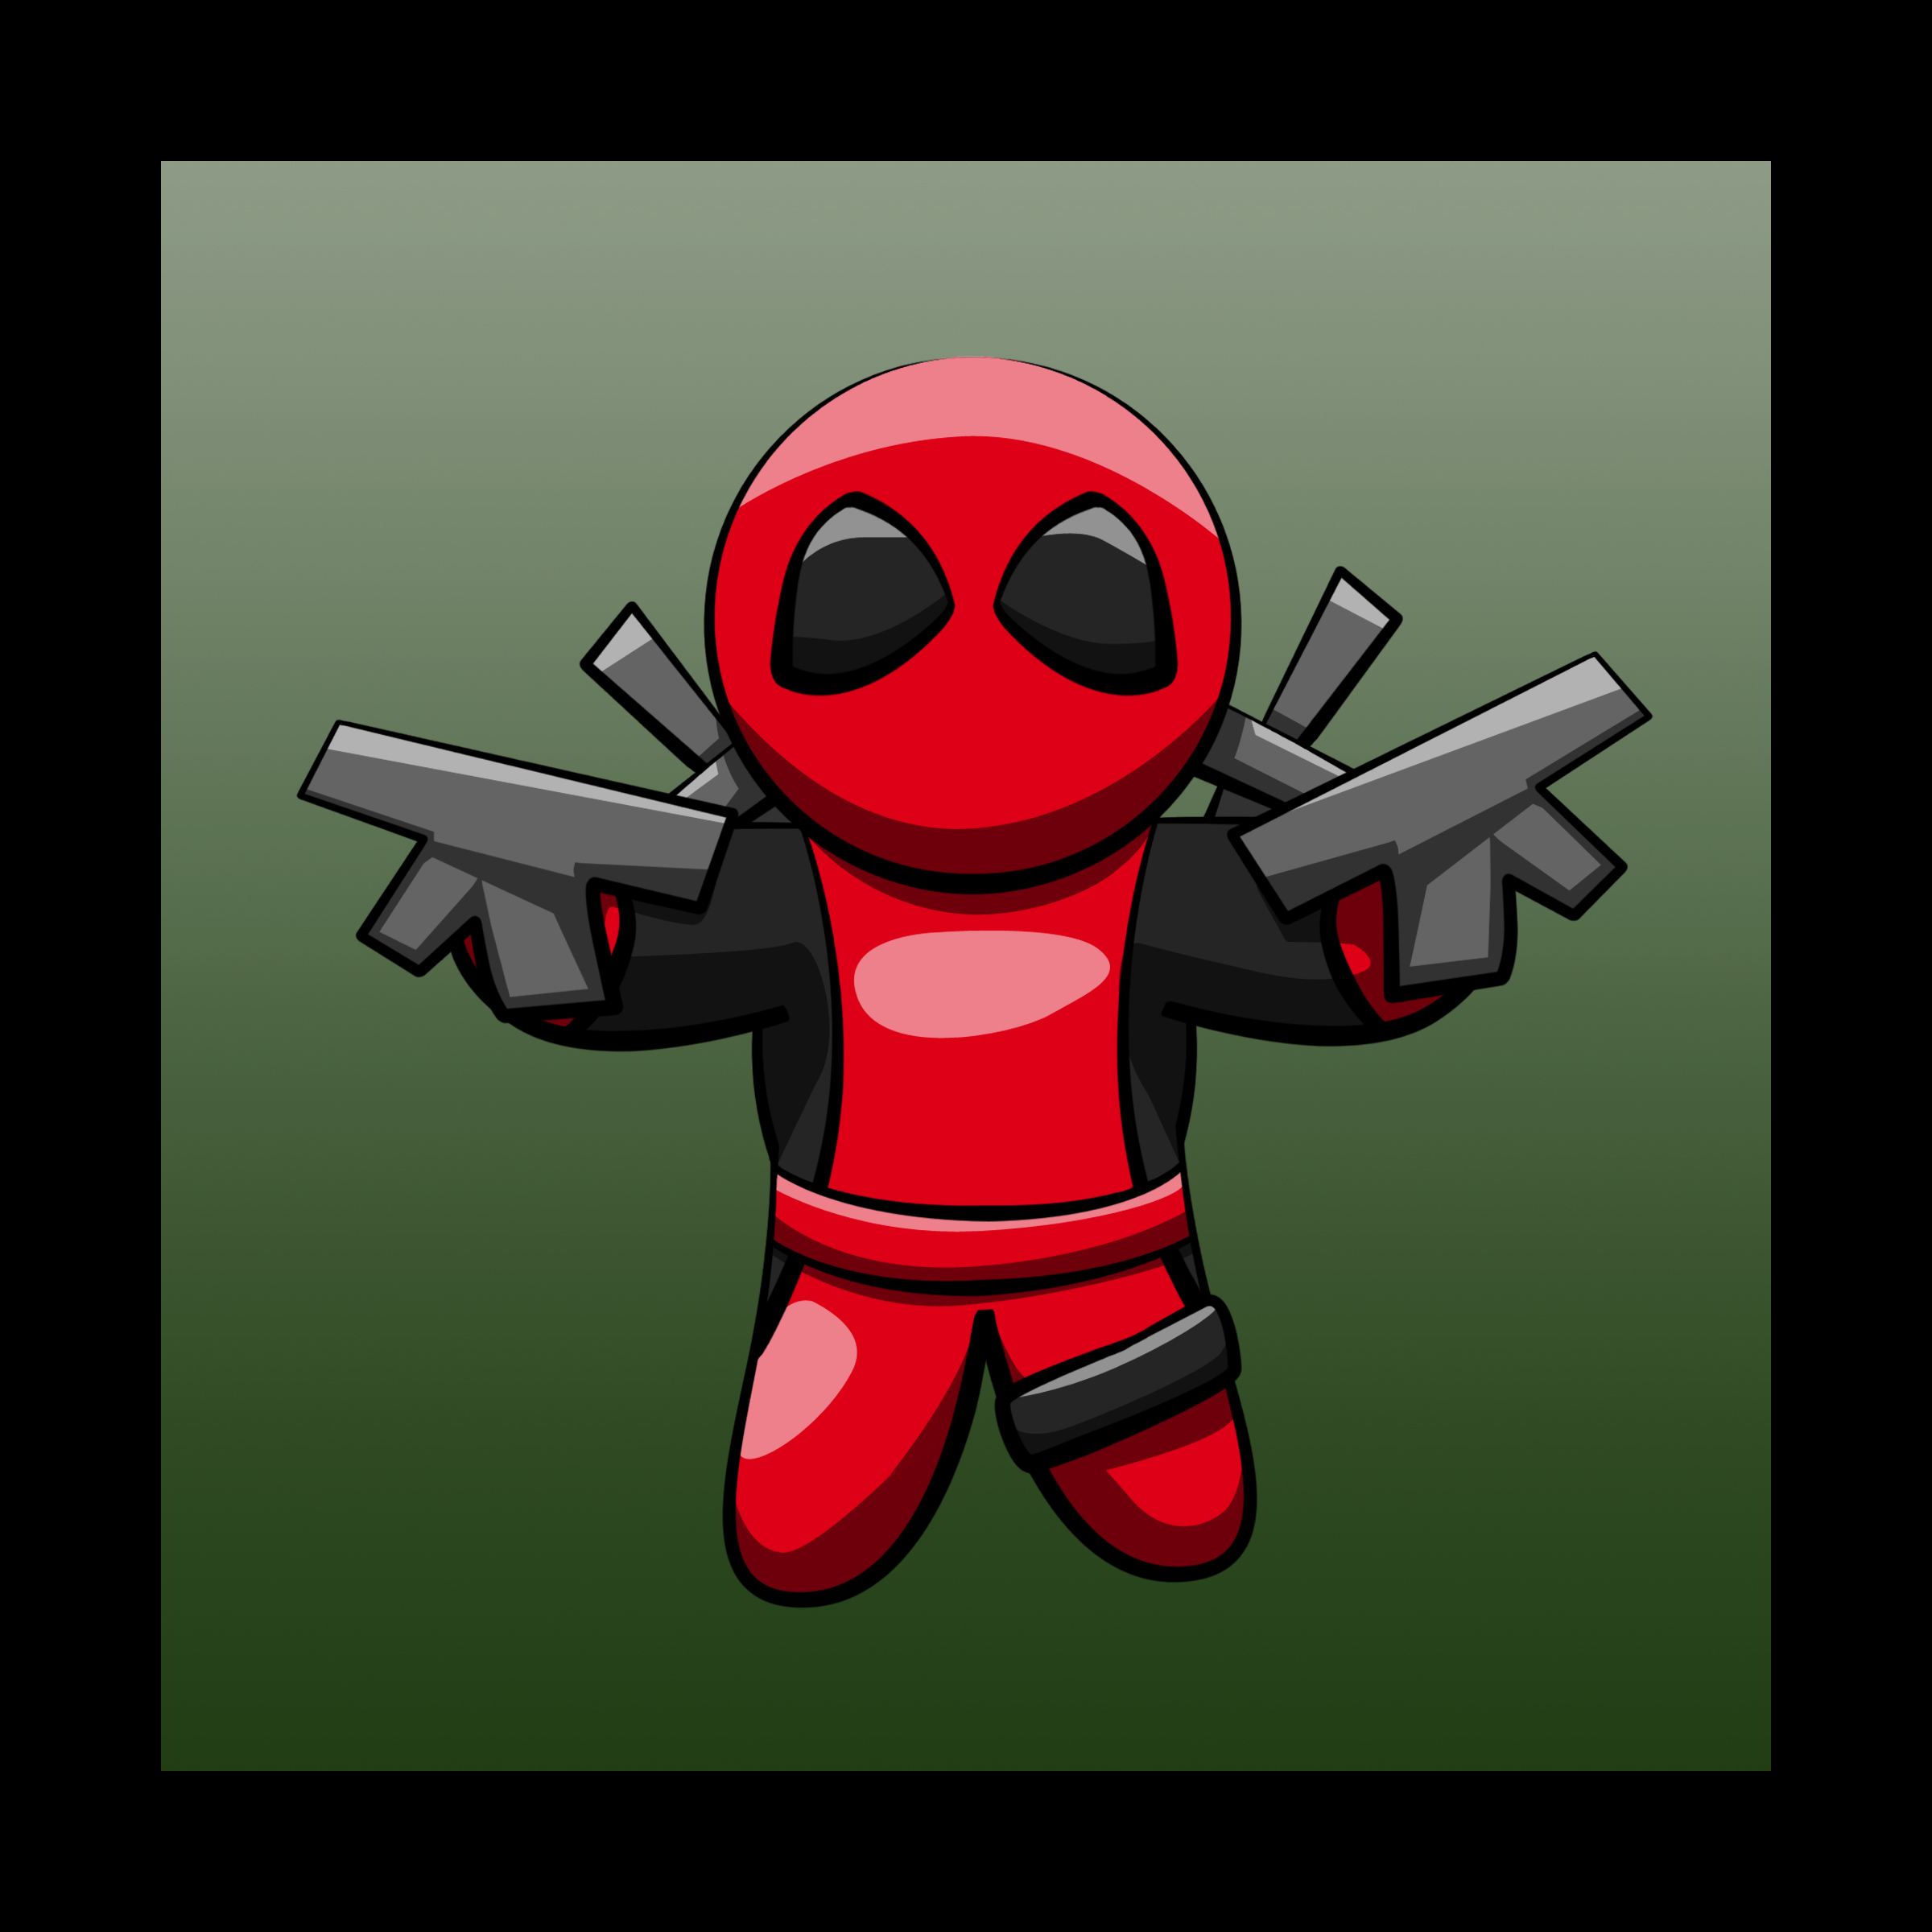 toocutedeadpool.jpg